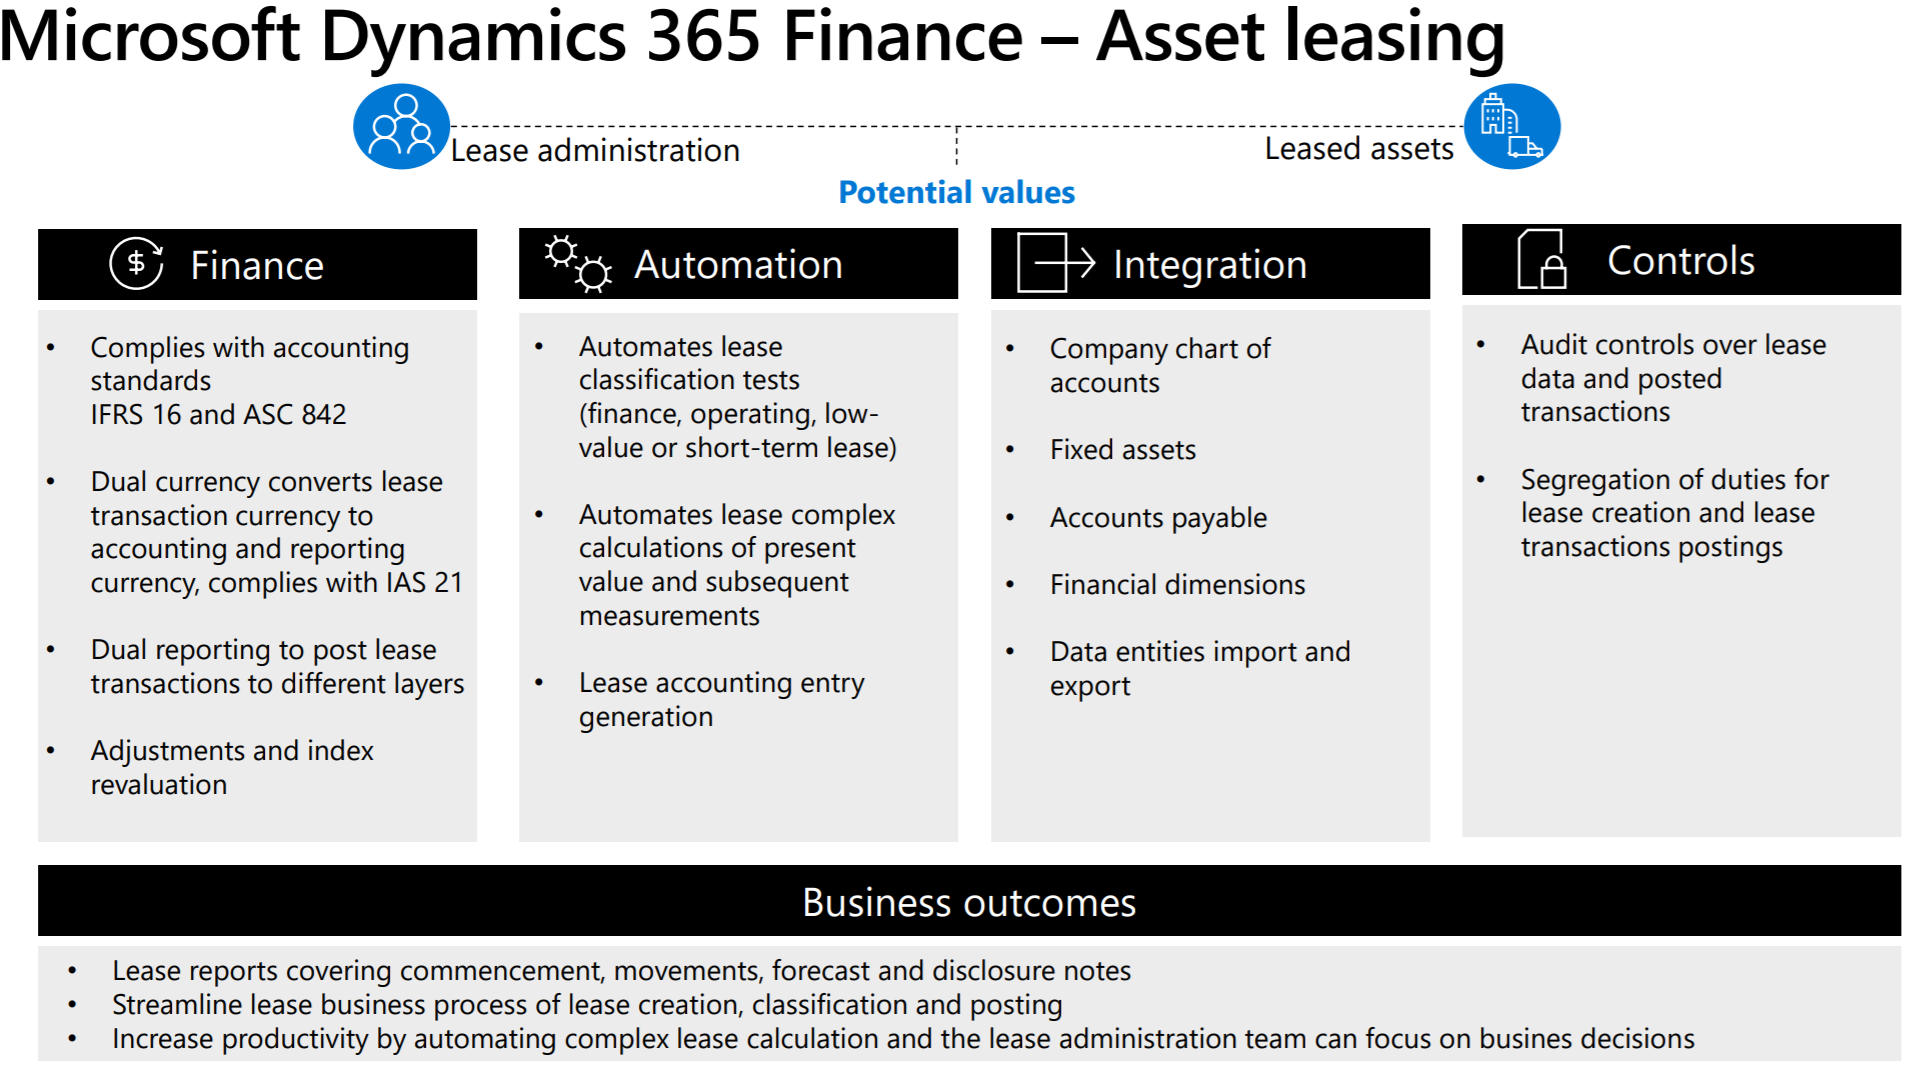 asset leasing module overview from Microsoft